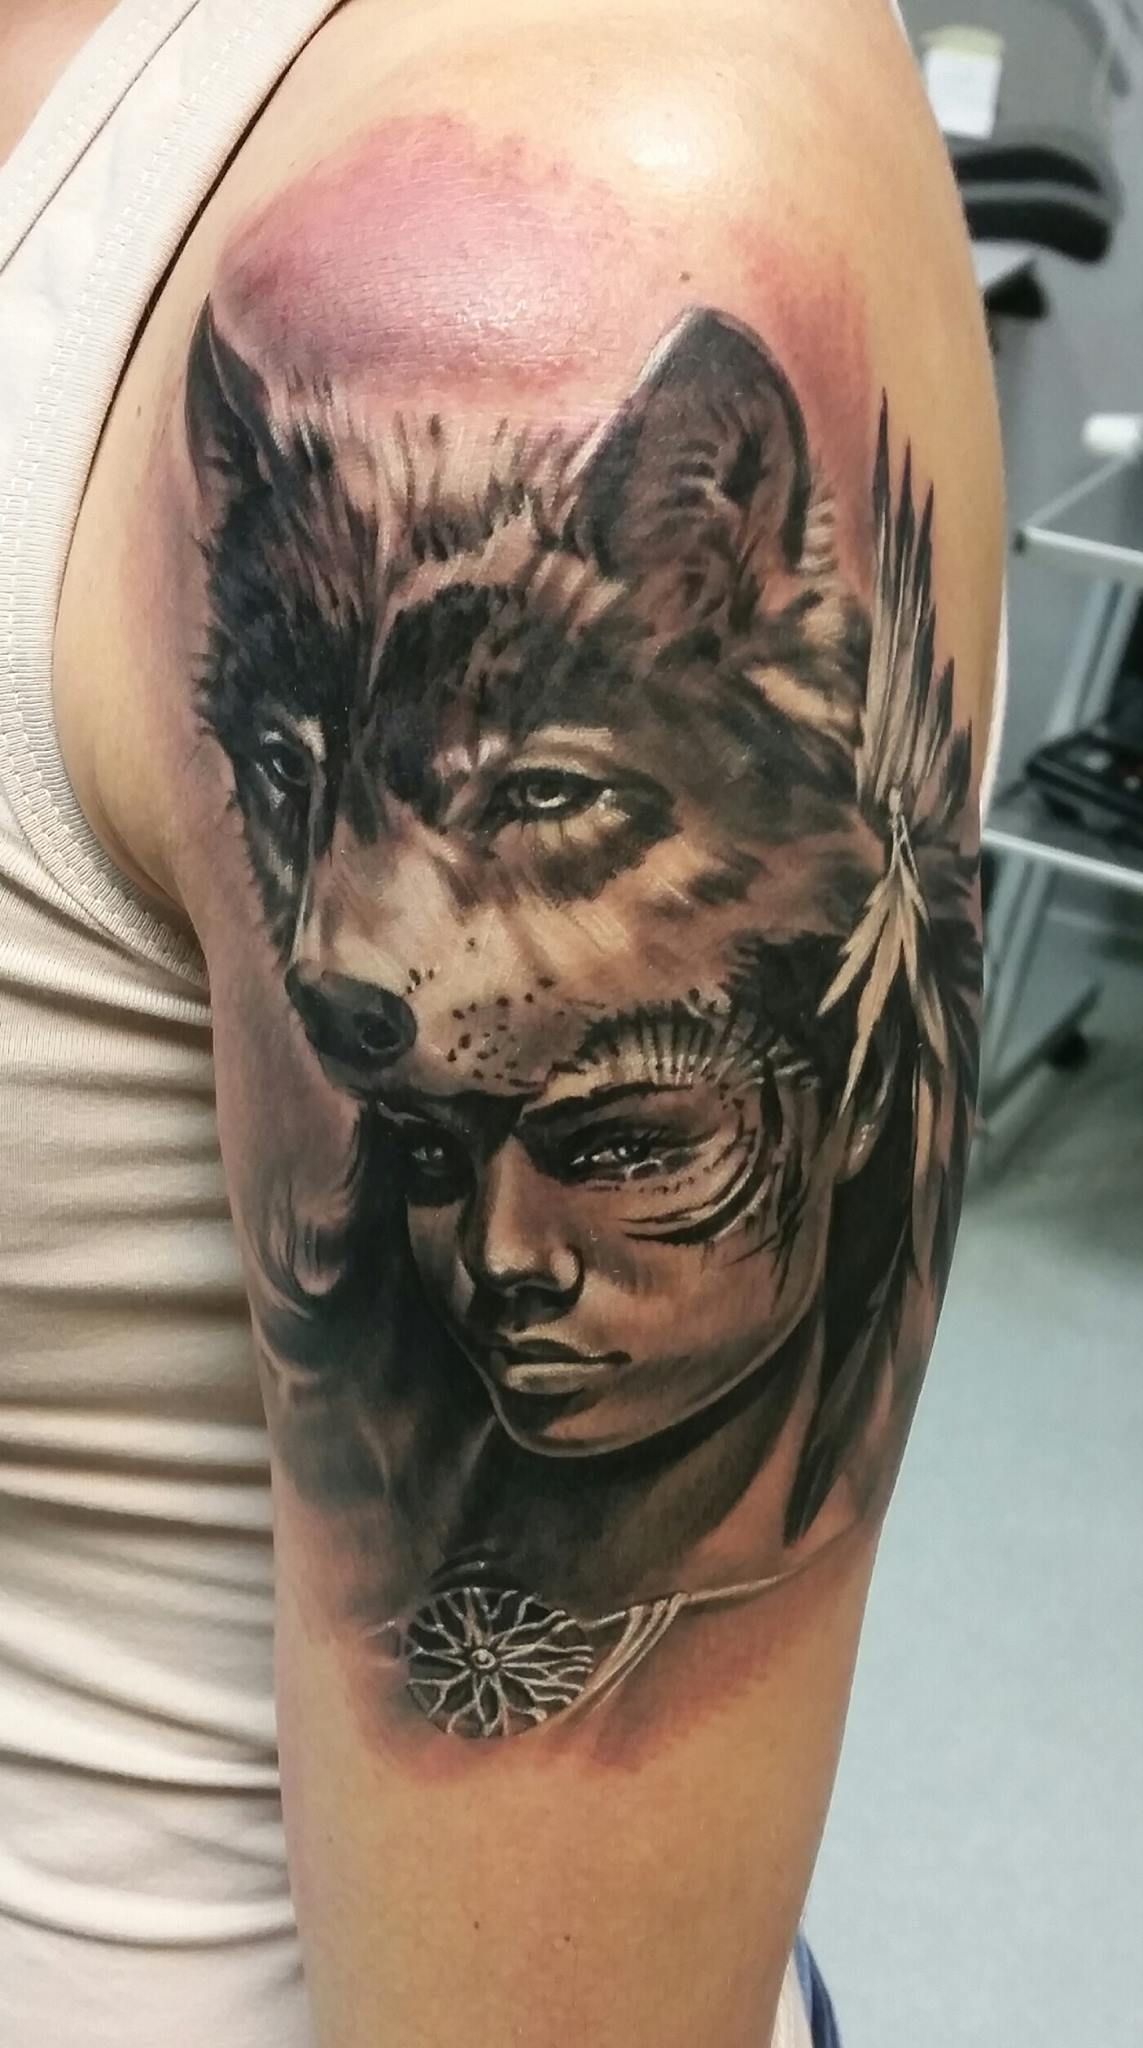 Woman With Wolf On Head Tattoo By Adam Kjalfo Limited Availability At Redemption Tattoo Studio Tattoo Studio Head Tattoos Tattoos